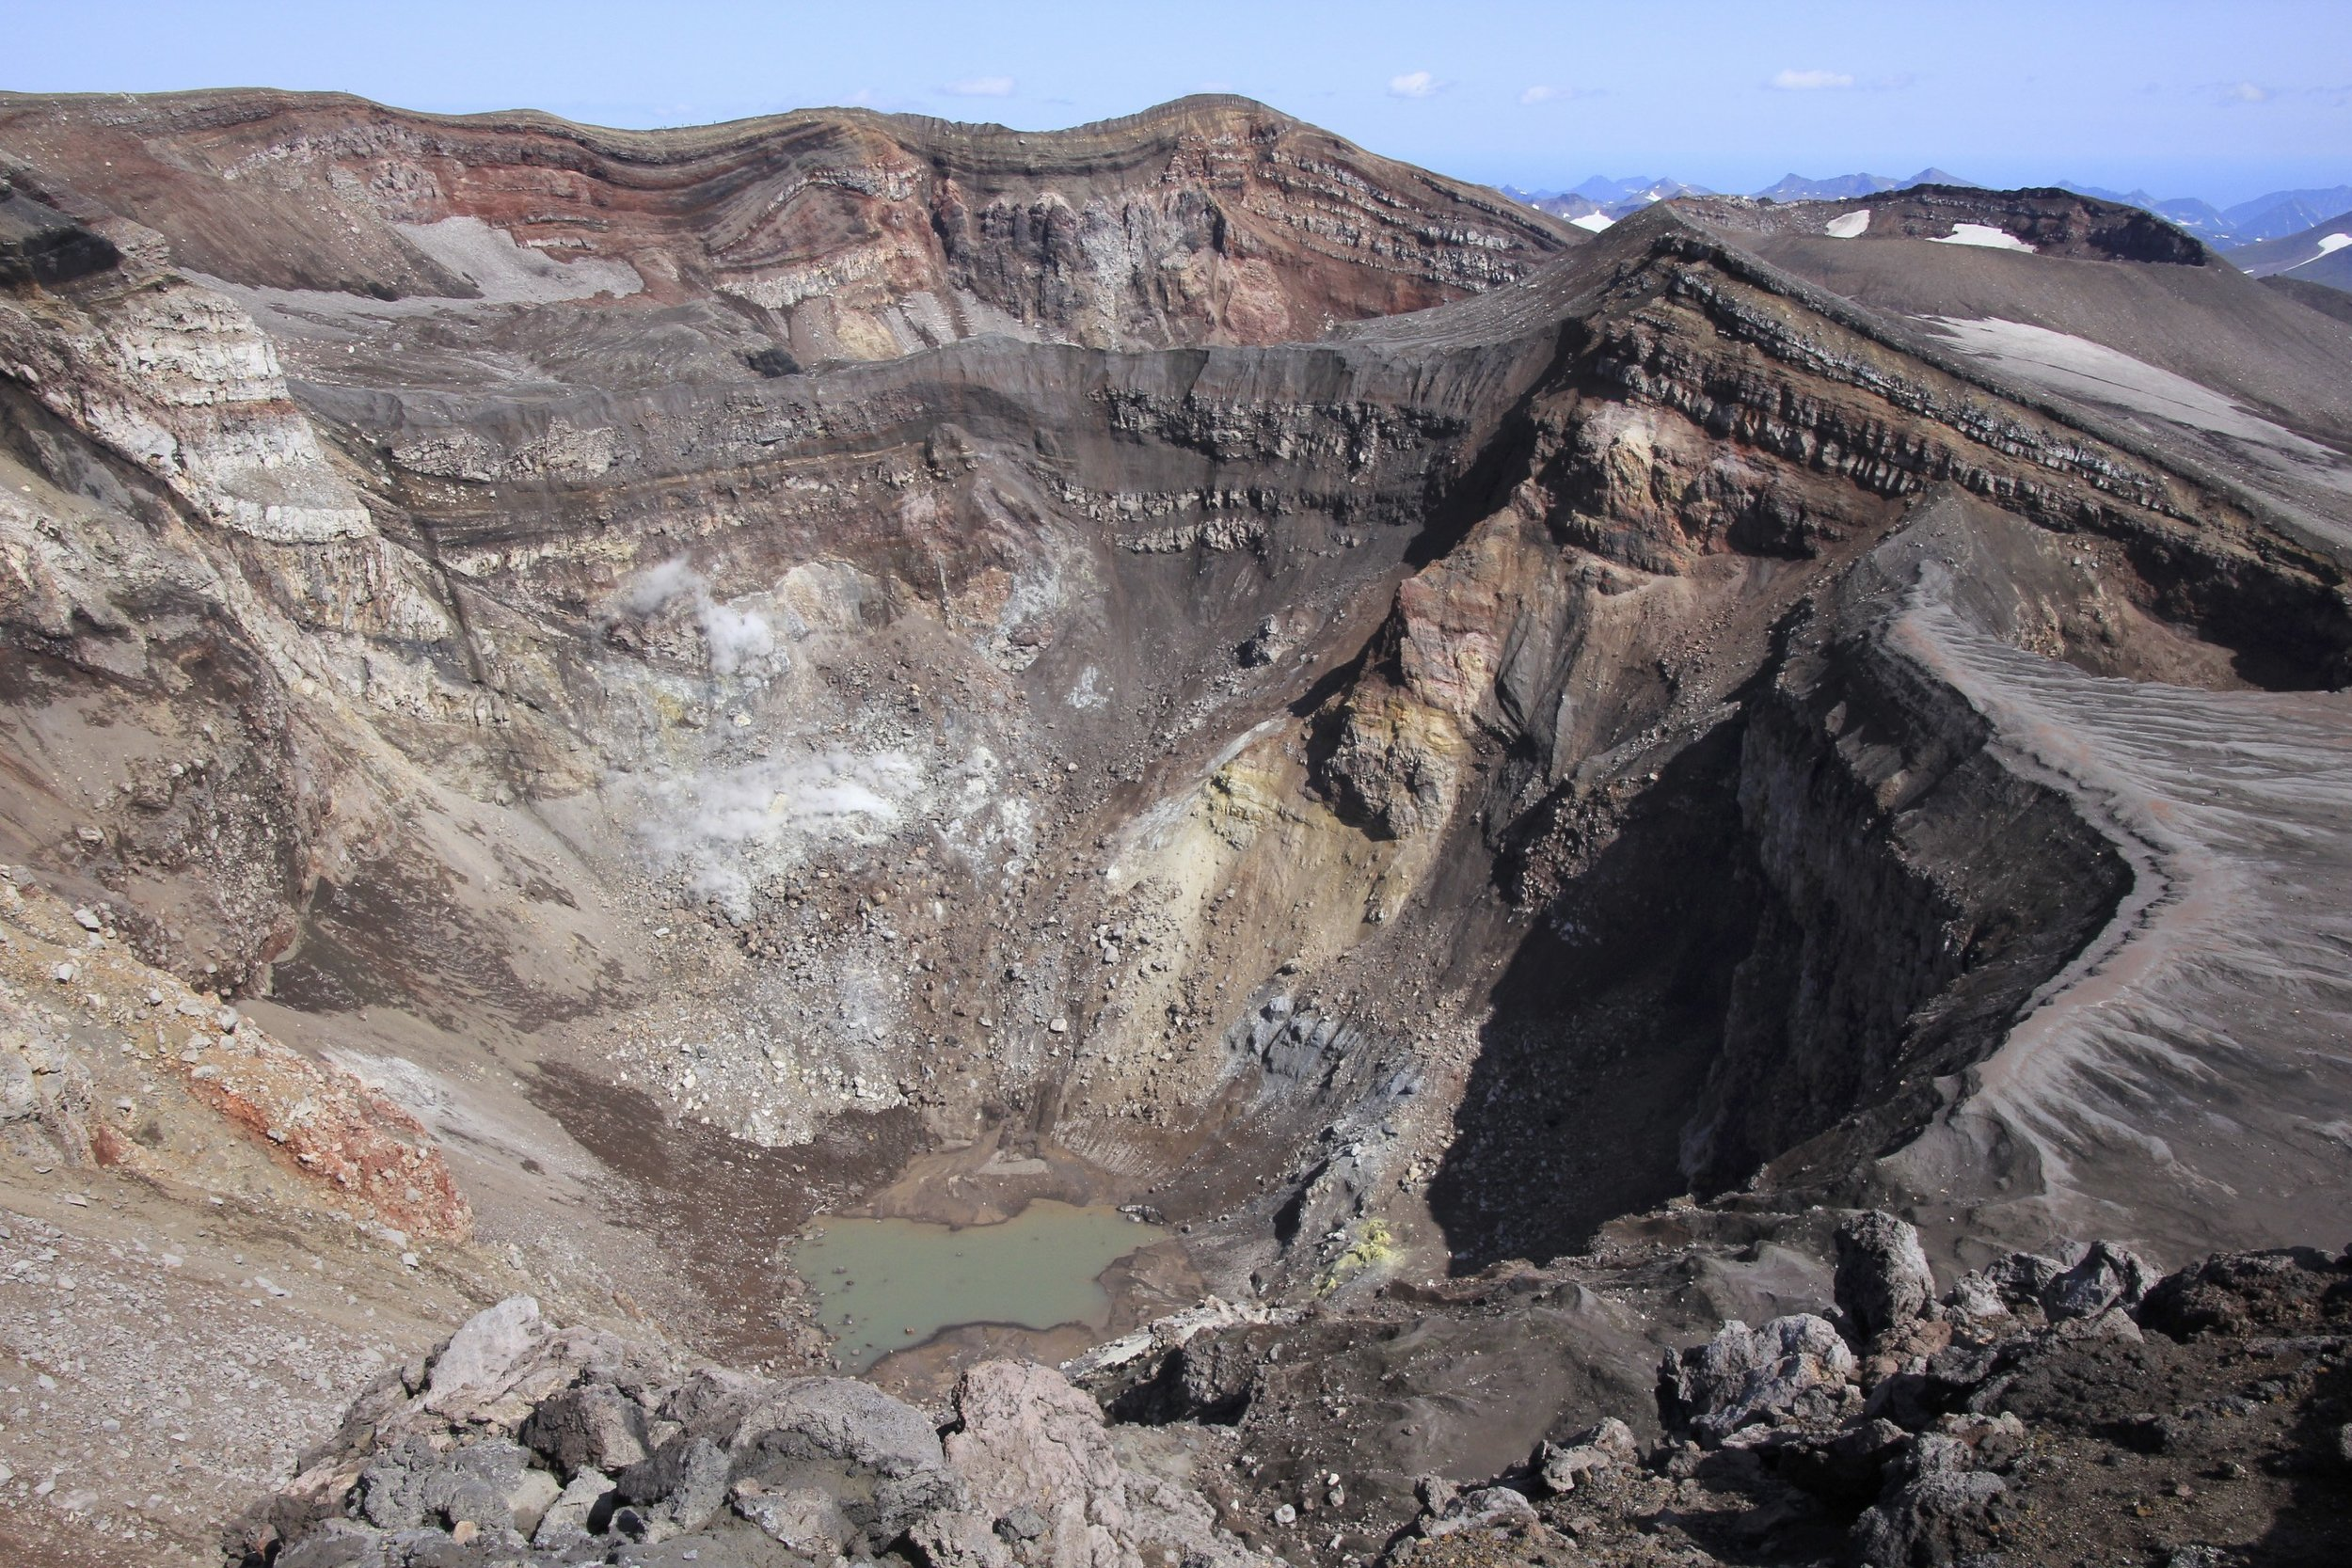 The active crater of Gorely, We walked by numerous active vents and the smell of sulfur was in the air.